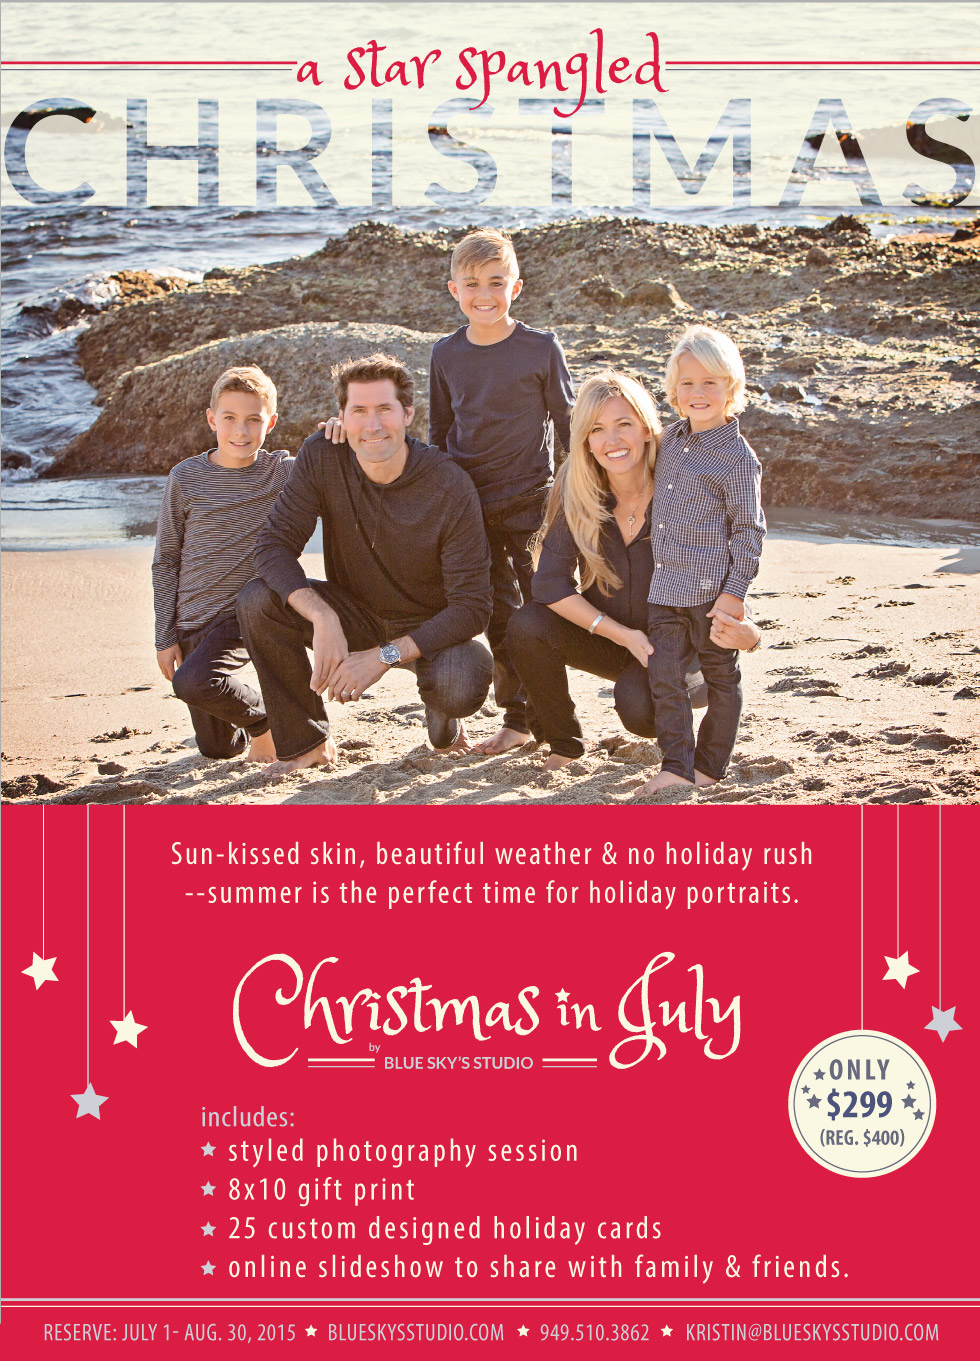 Christmas in July Photo Sessions